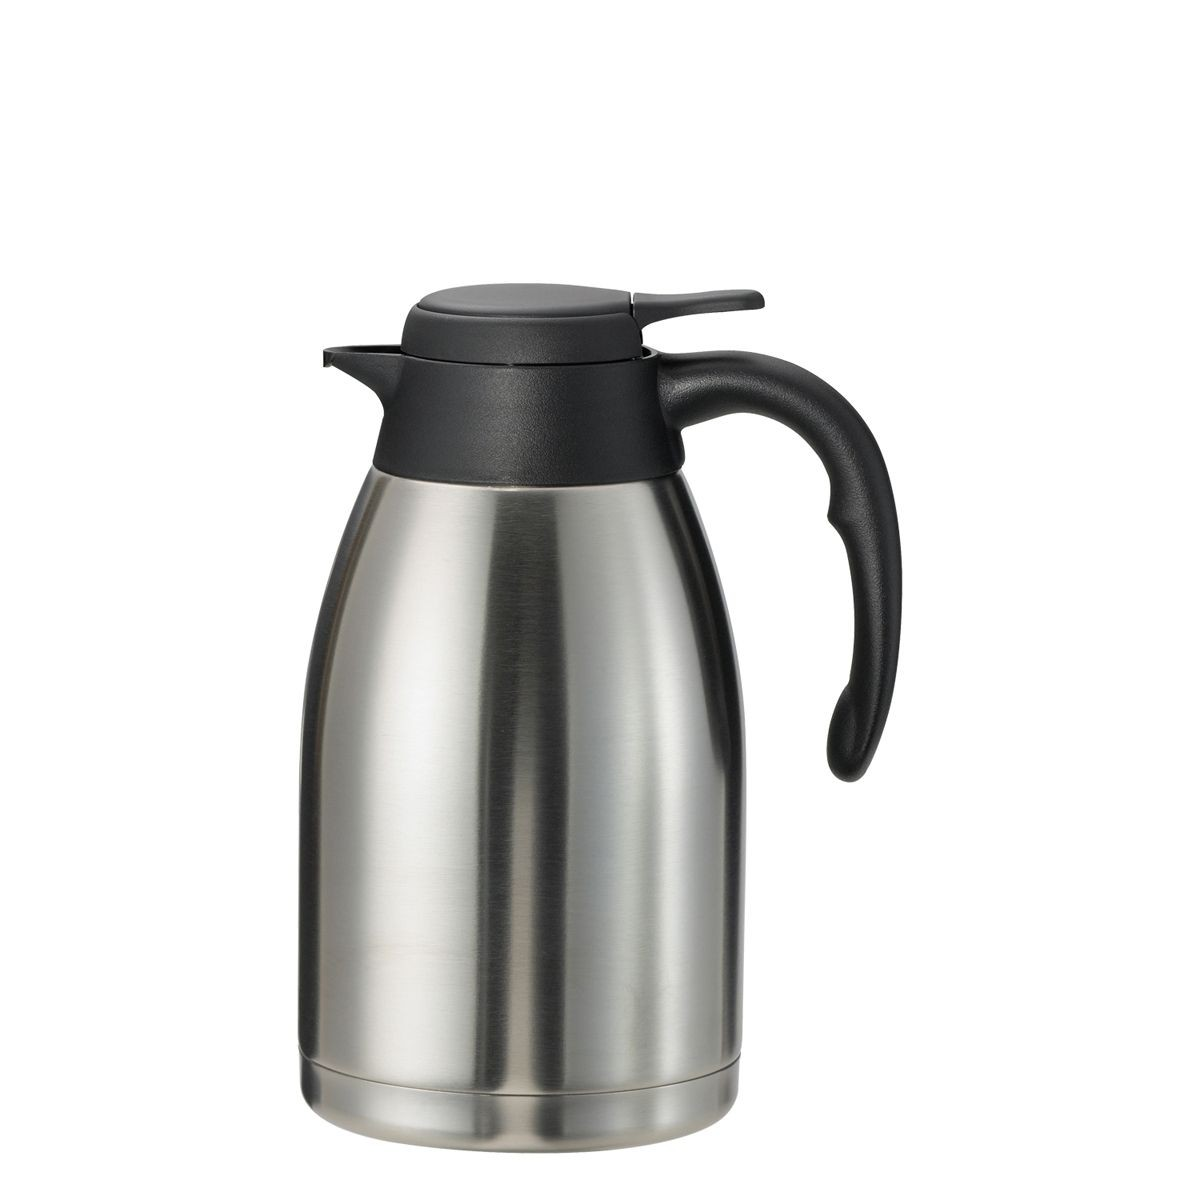 Service Ideas PWLA161 Steelvac Brushed Stainless Server, 1.6 Liter (54 oz.)